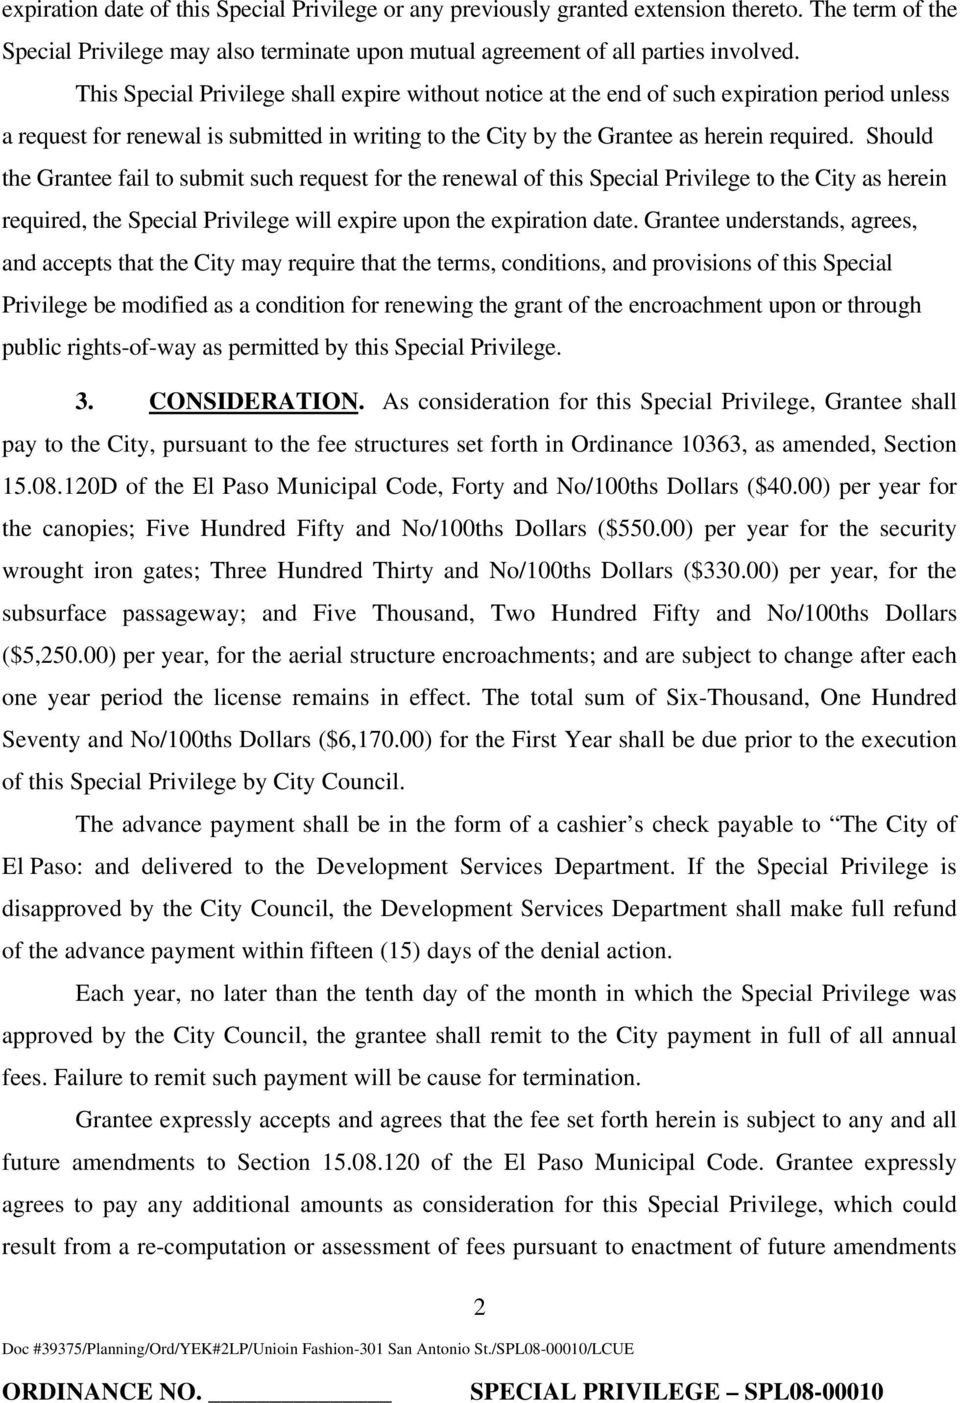 Should the Grantee fail to submit such request for the renewal of this Special Privilege to the City as herein required, the Special Privilege will expire upon the expiration date.